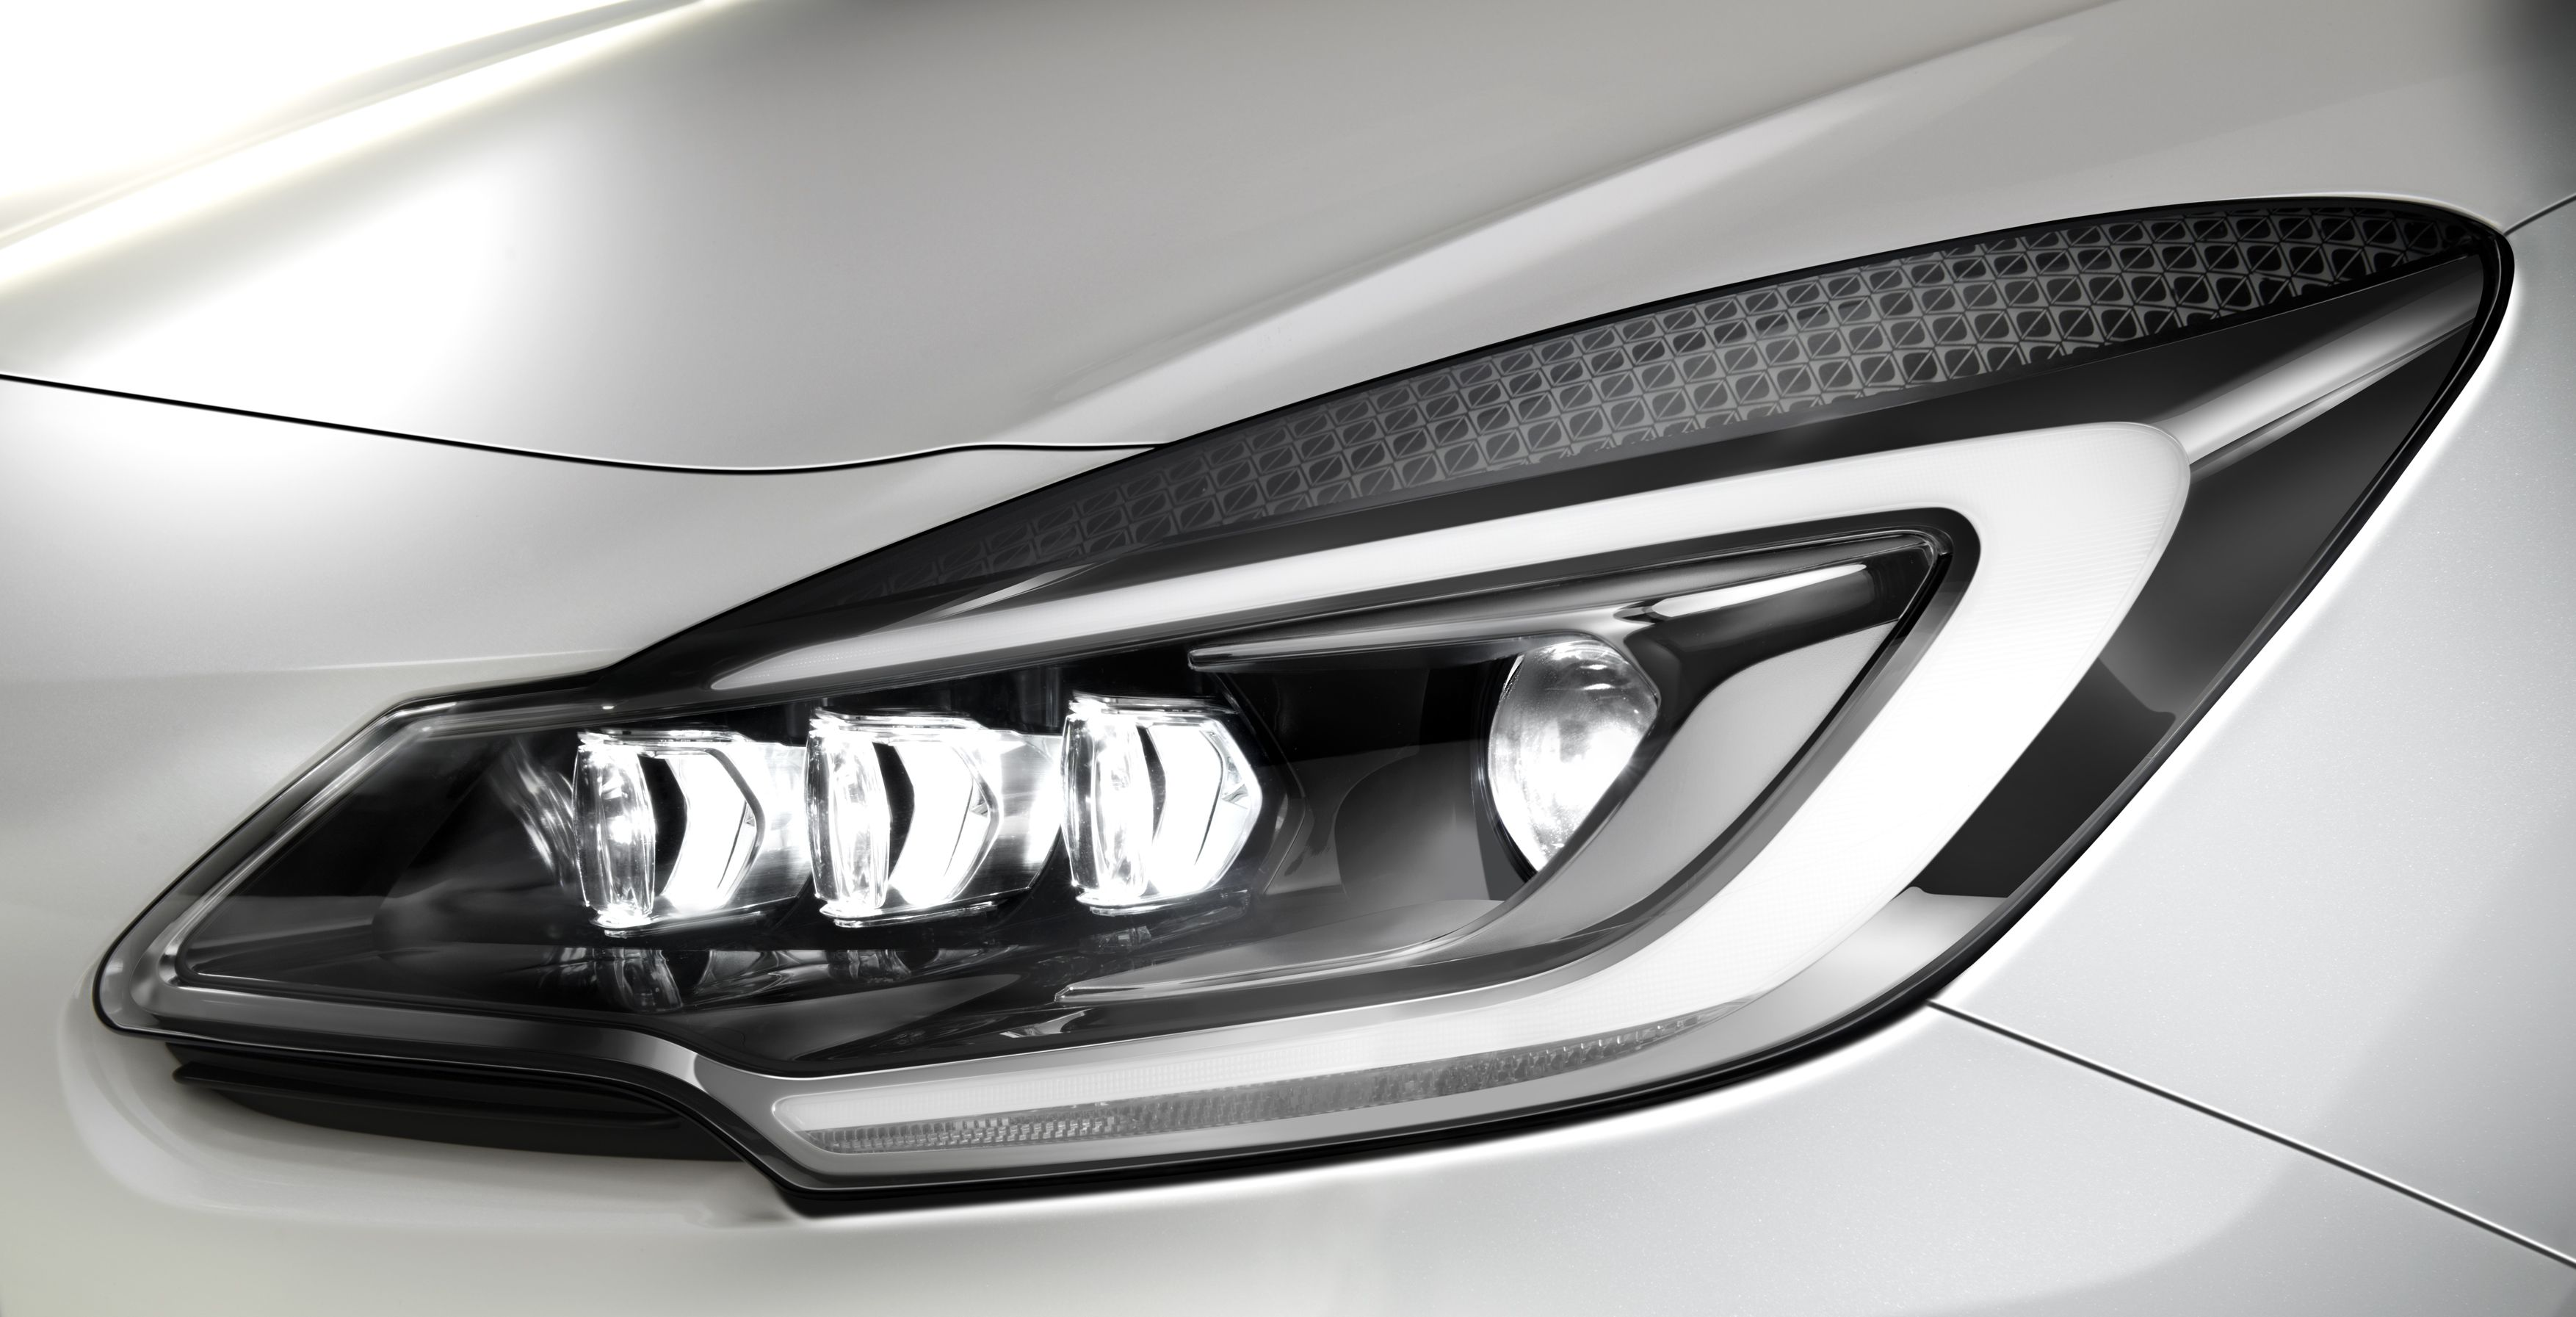 Lexus lf gh concept 2011 exterior detail 49 of 49 1600x1200 - Find This Pin And More On Detail Lamps